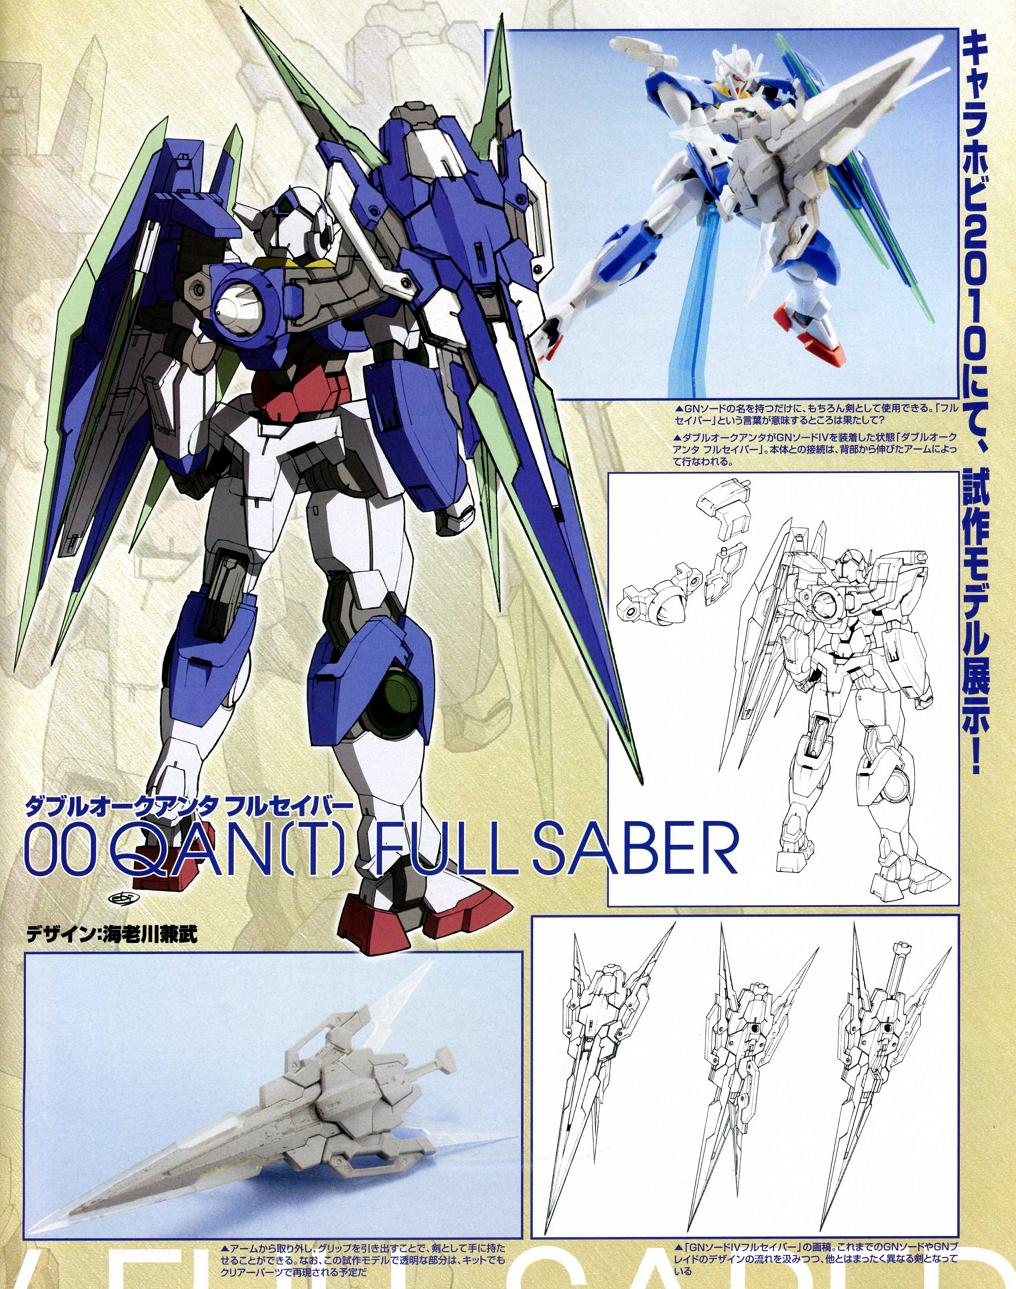 http://superrobotwar.files.wordpress.com/2010/08/srwhotnews_hj10_00v1.jpg